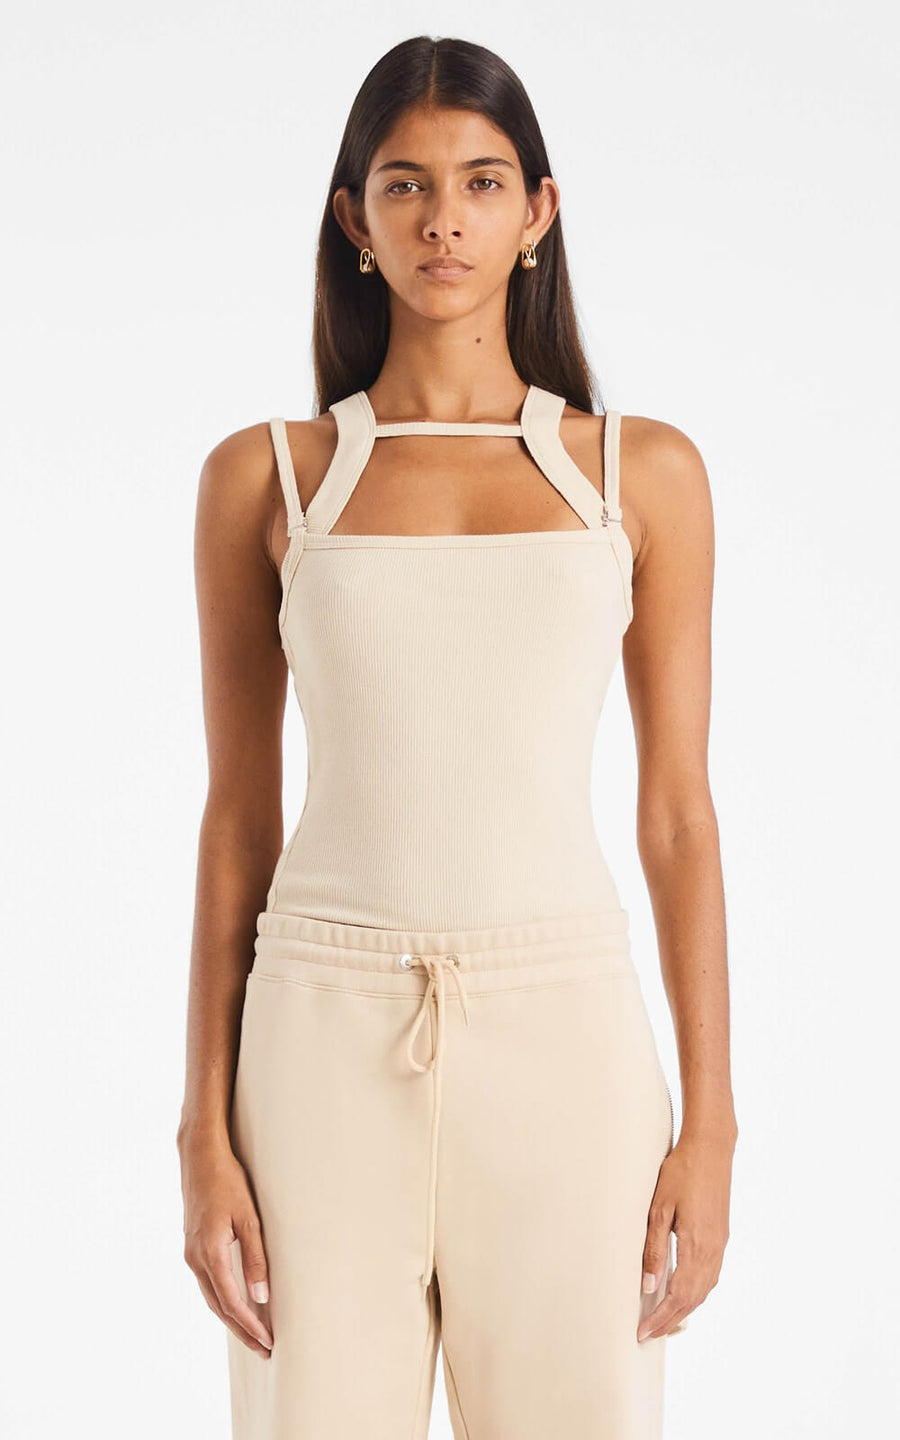 Dion Lee Women's Rib Holster Tank Top Sand from The New Trend